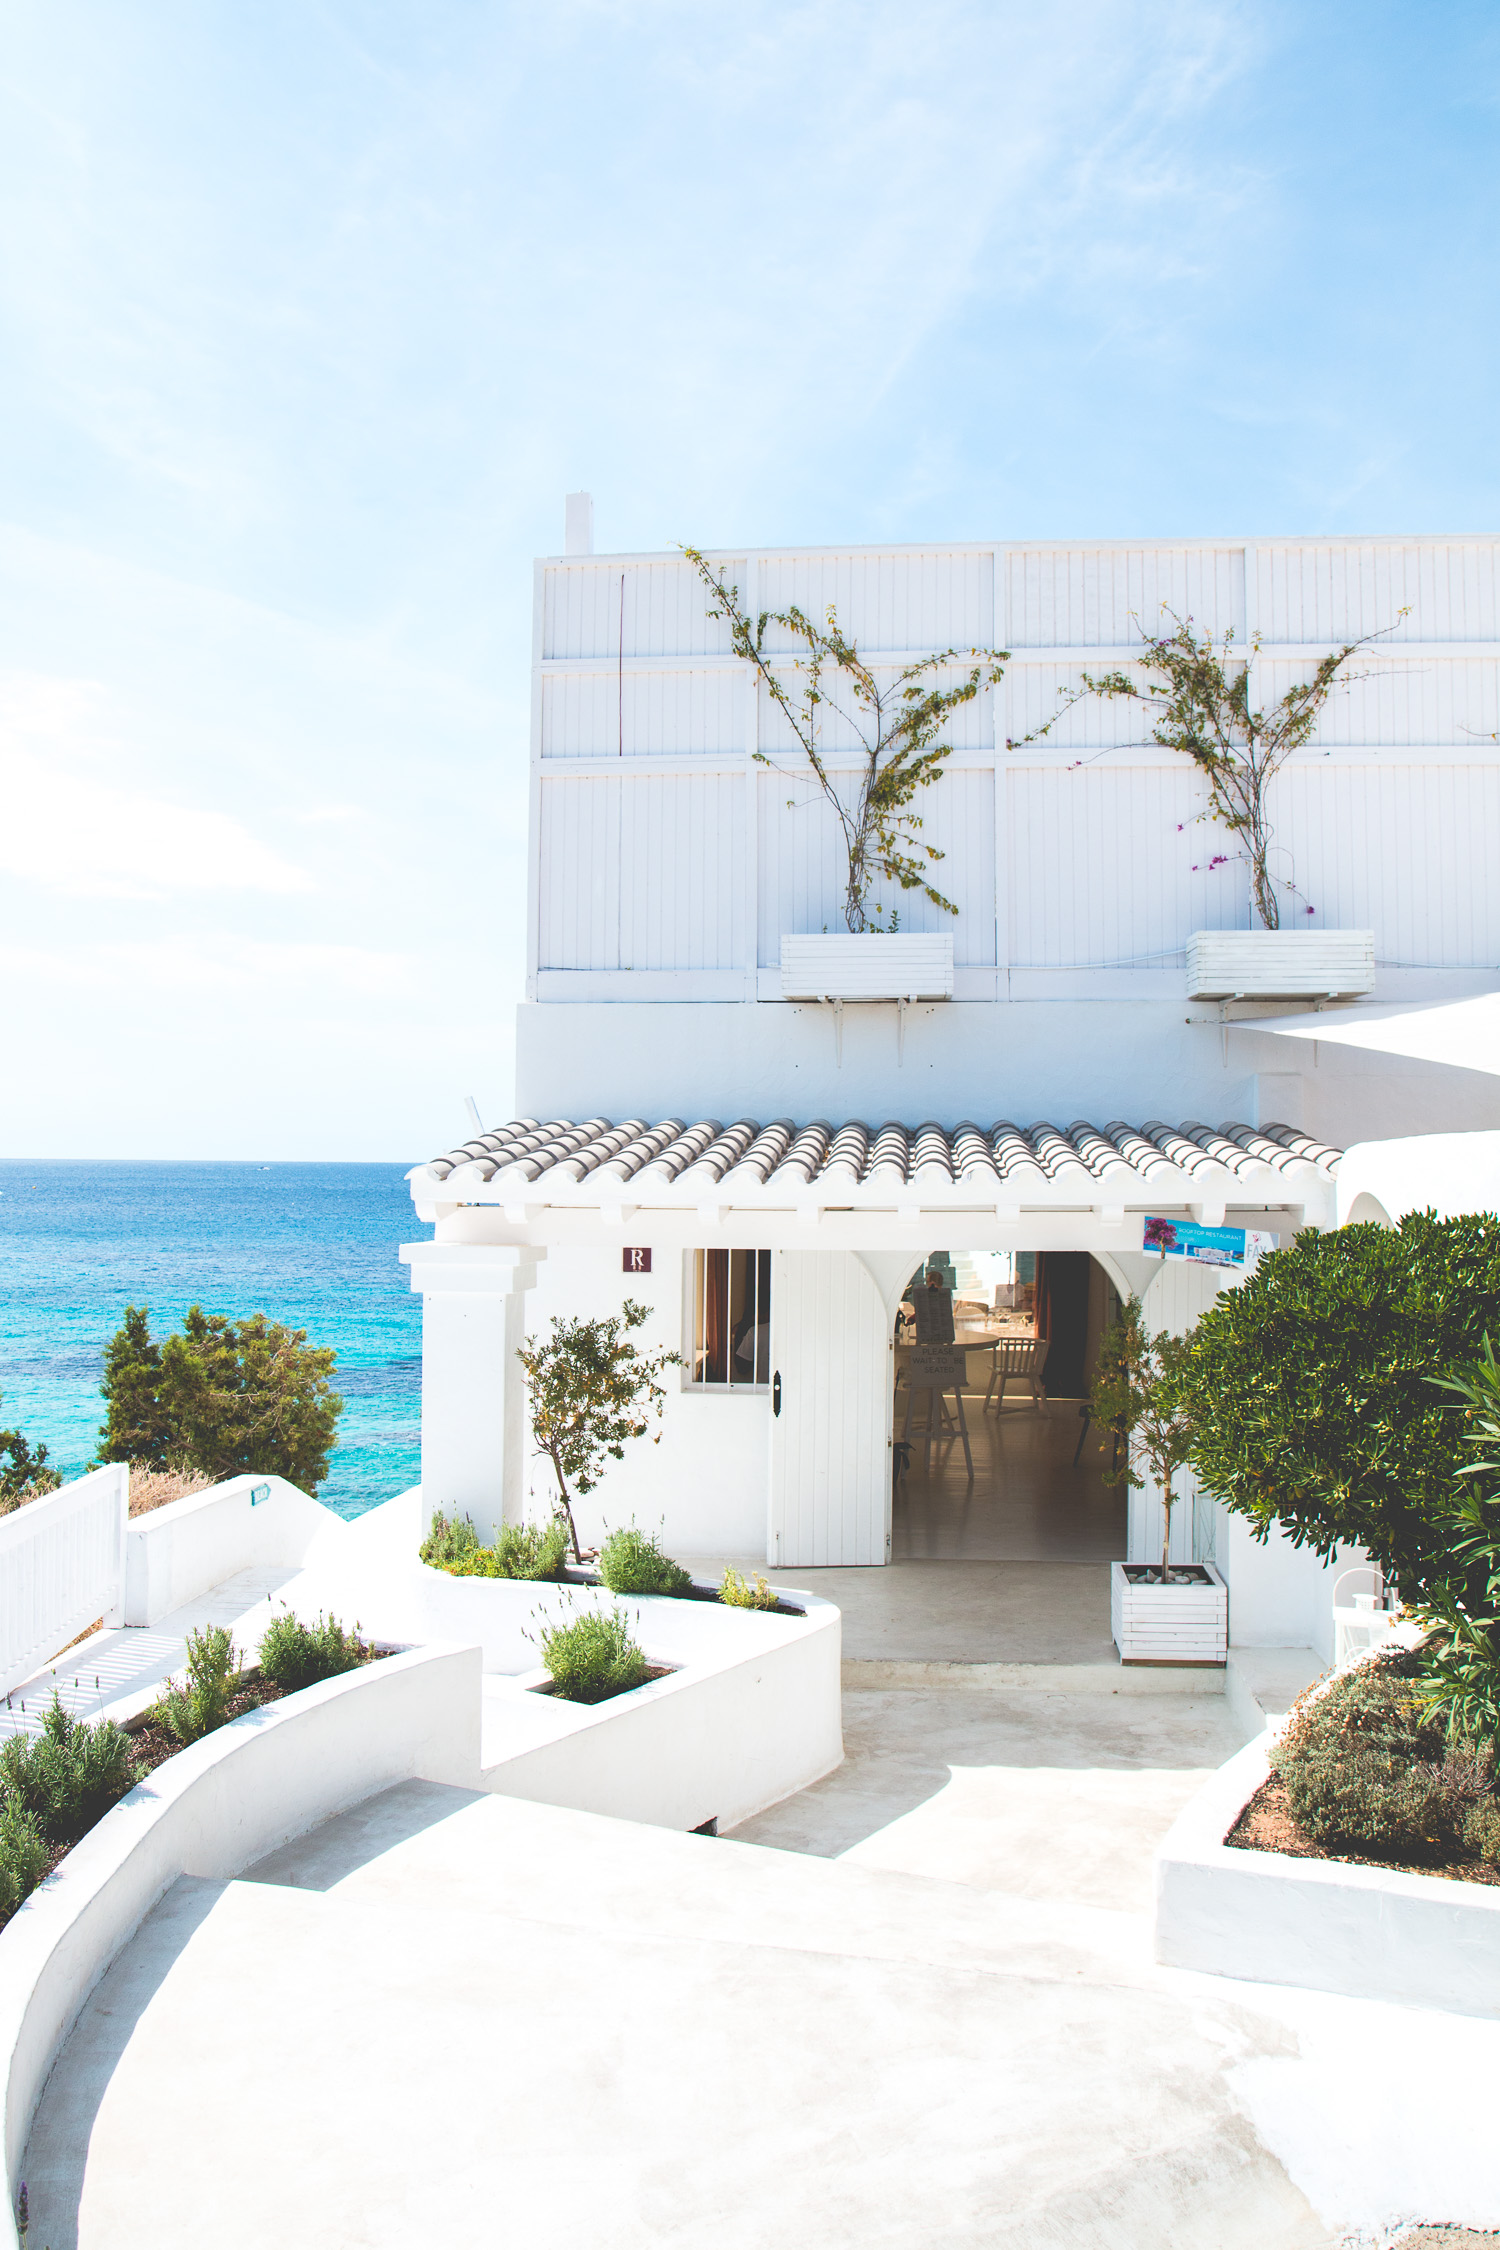 Ibiza Travel Review, Cotton Beach Club